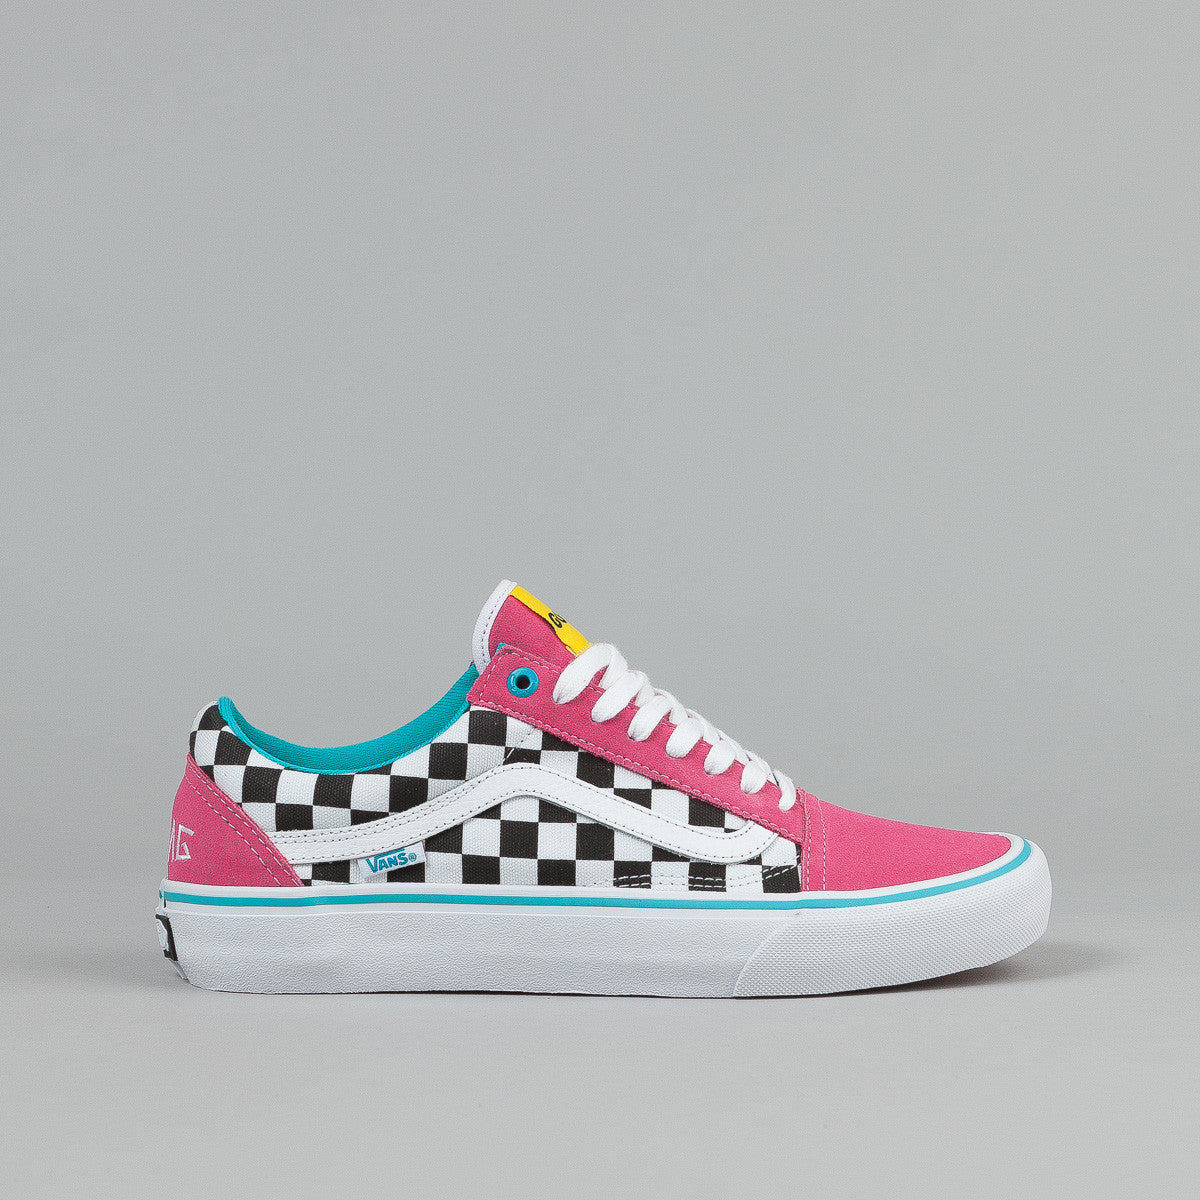 Vans Old Skool Pro Shoes (Golf Wang)